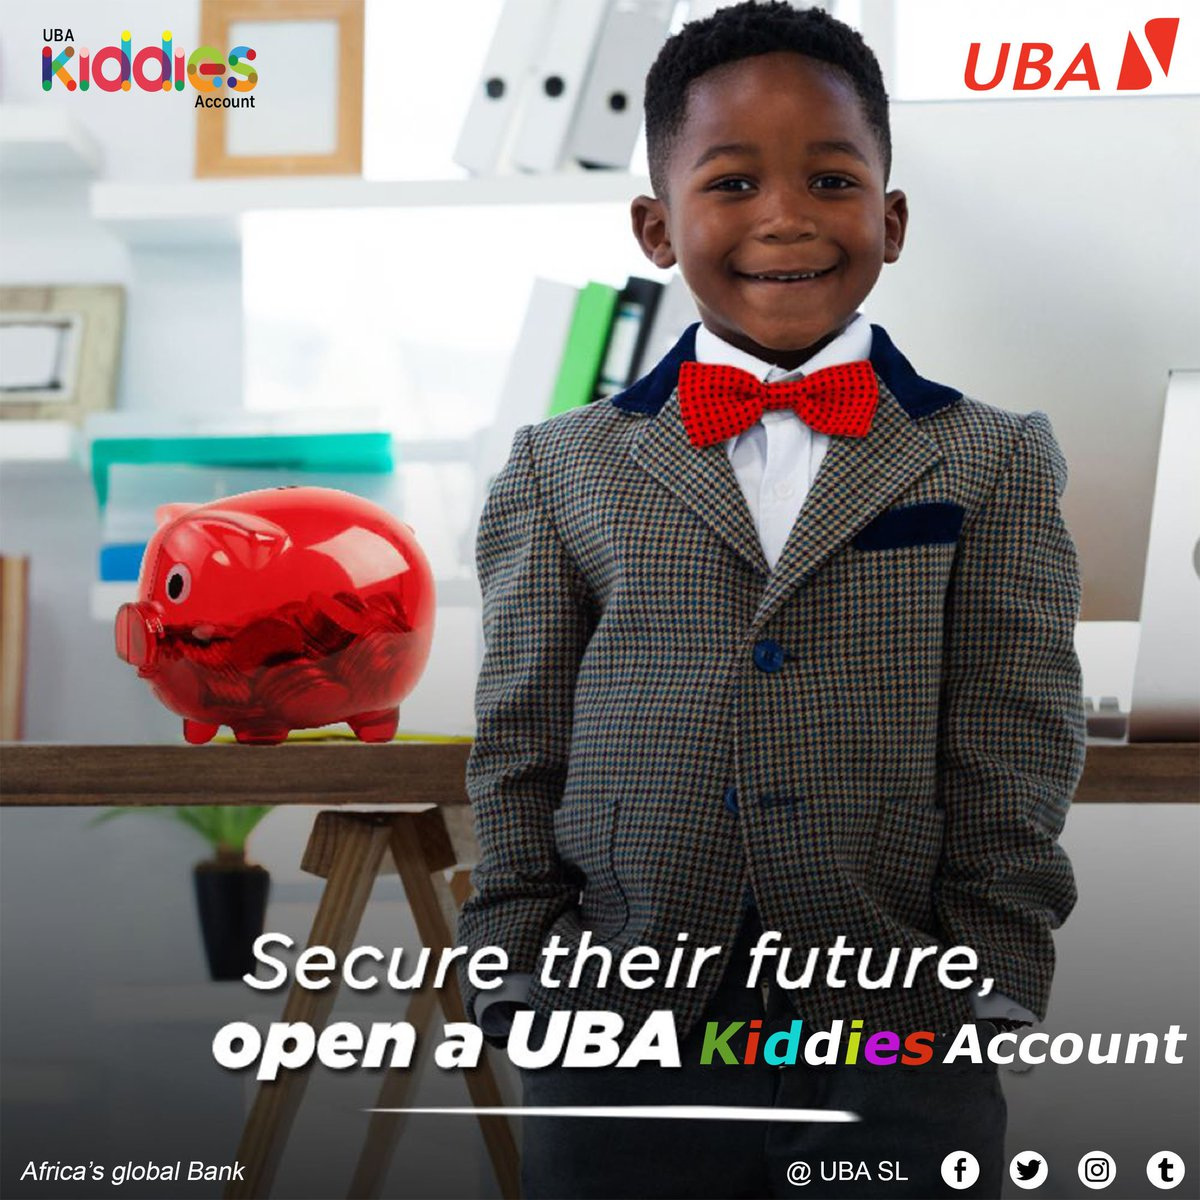 Benefits  - Earn 13th Month Reward of monthly savings plan  - A chance to partake in the scholarship scheme  -  A one-year Scholarship  -  Best interest rate payable monthly    #UBAGroup  #UBAKiddies  #UBASierraLeone  #AfricasGlobalBank https://t.co/tI3yAkAs9f